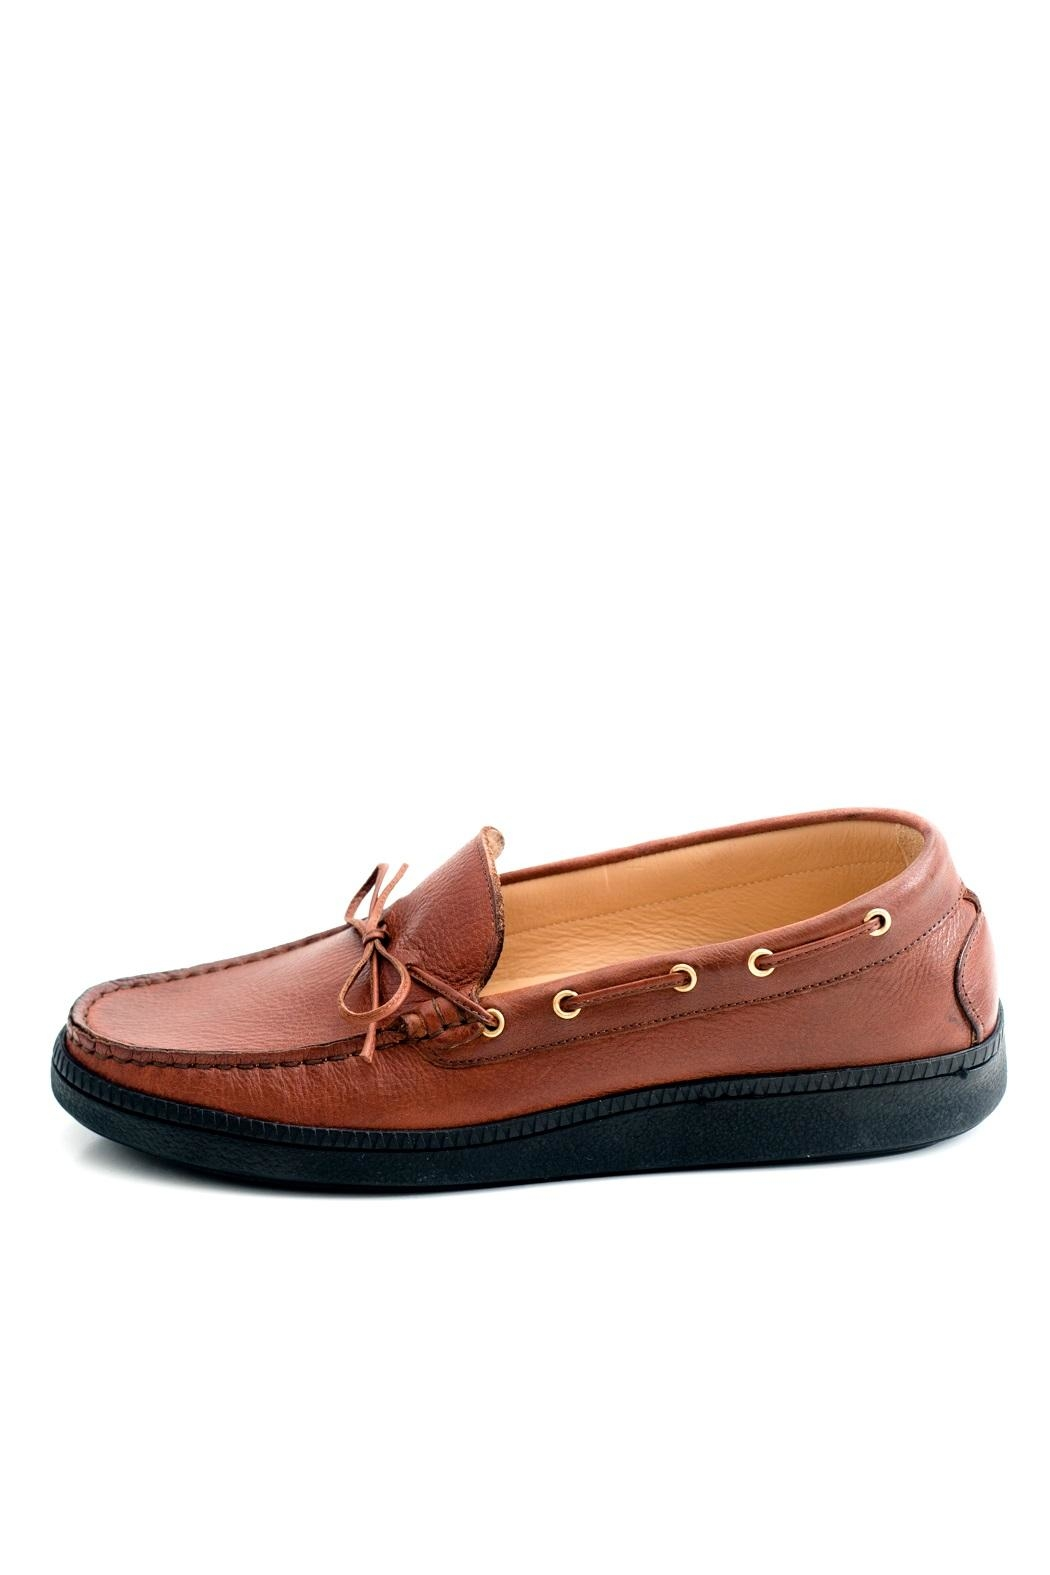 Pascucci Tan Leather Loafer - Main Image